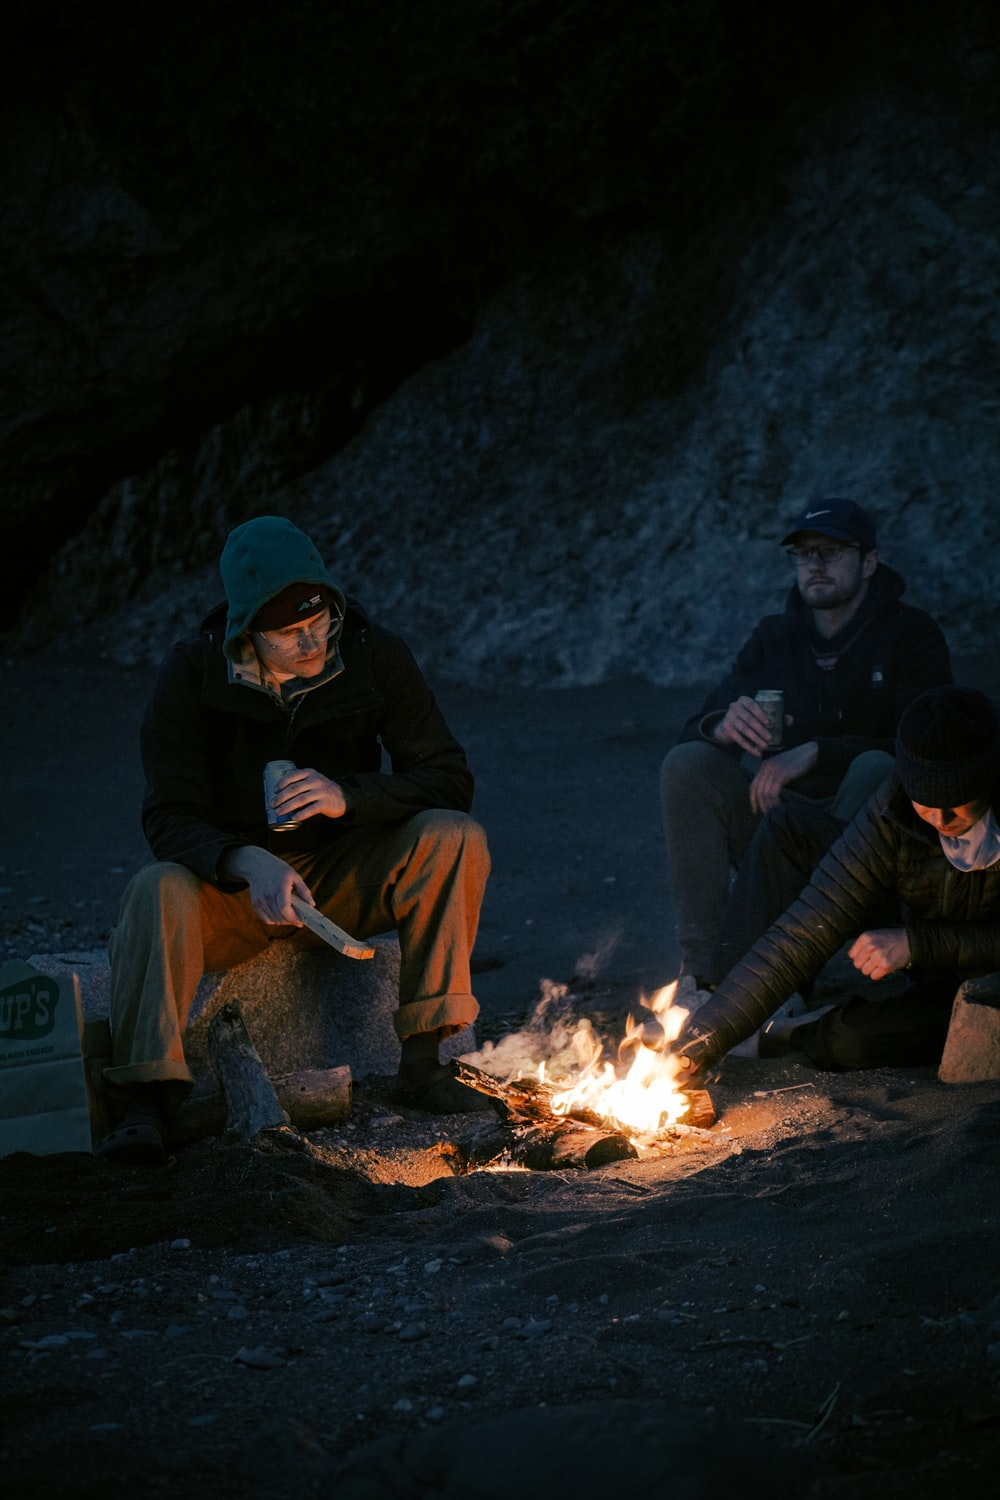 man and woman sitting on brown log near bonfire during daytime